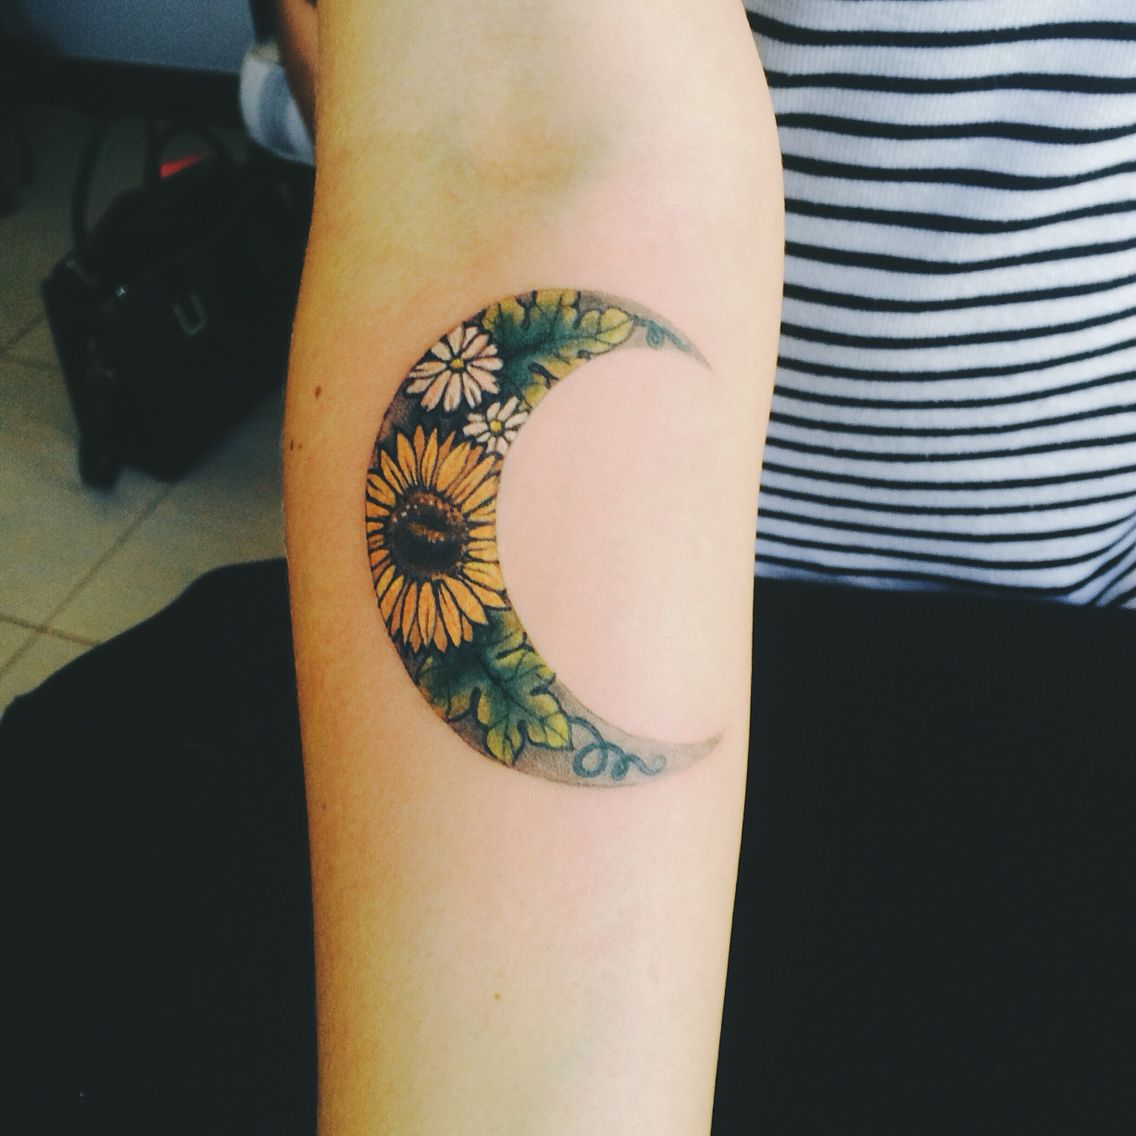 LATEST SUNFLOWER TATTOO DESIGNS FOR ATTRACTIVE WOMEN'S LOOK 12